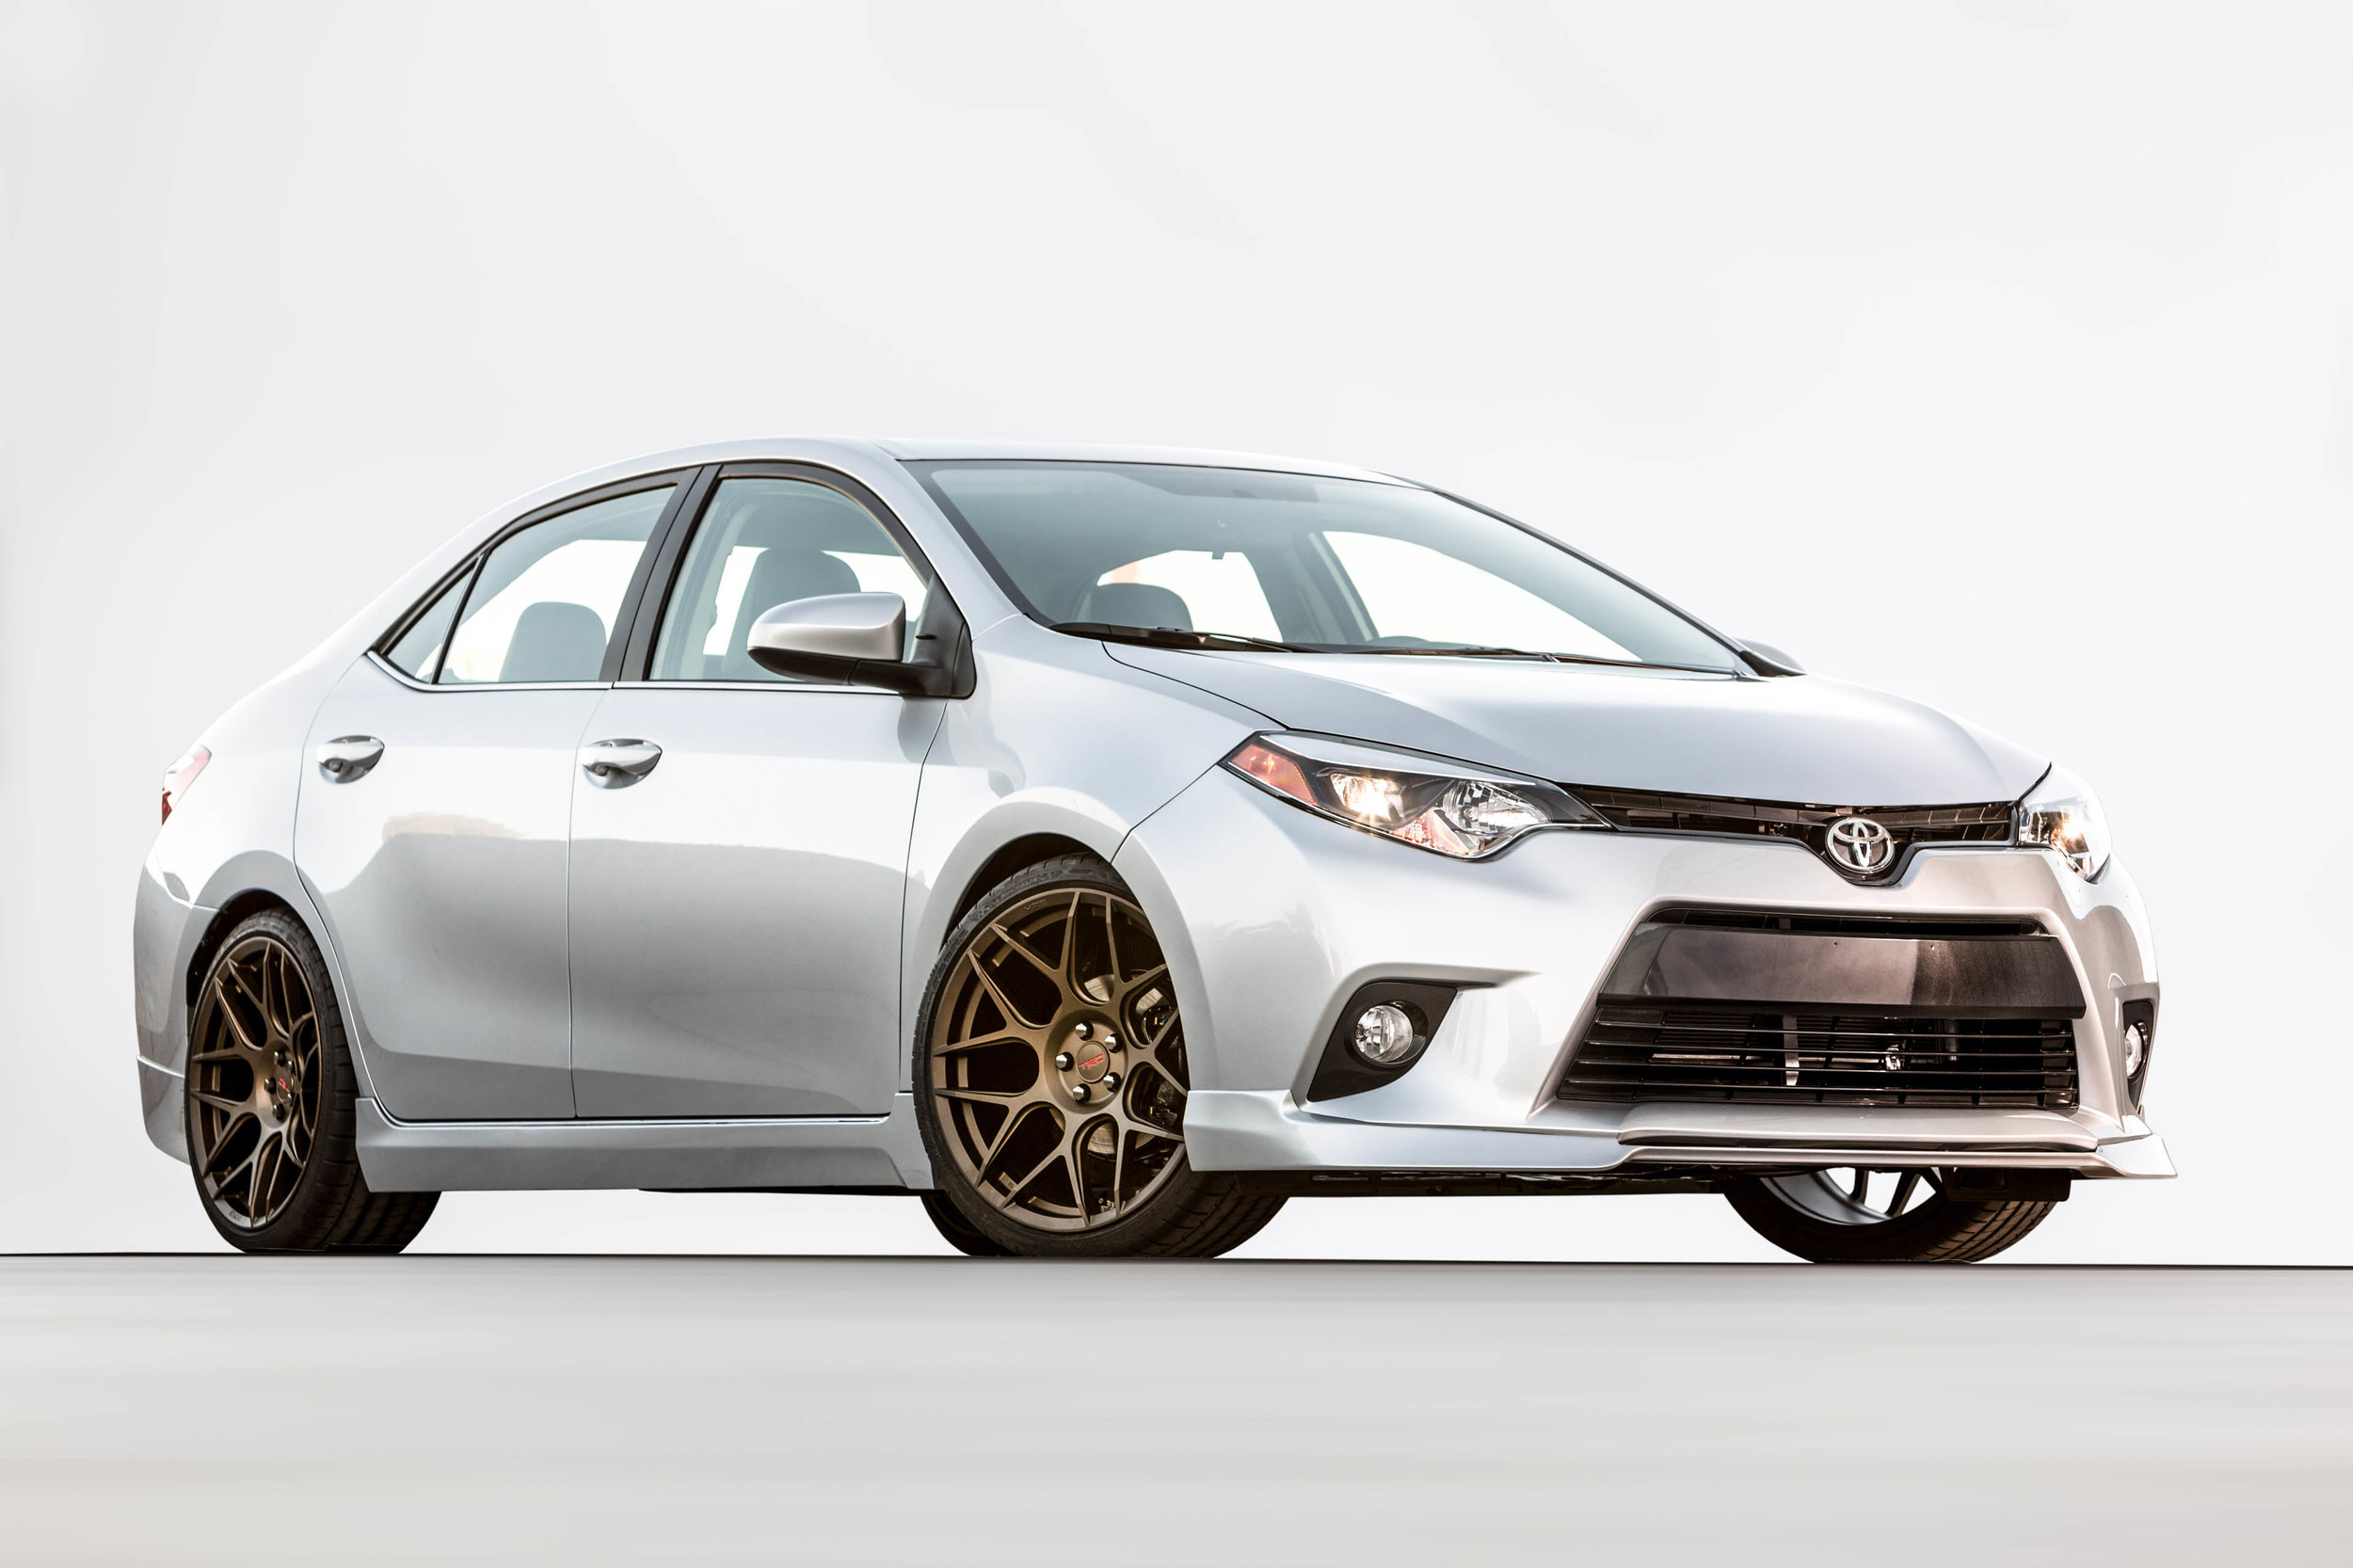 eco a toyota decades of corolla consistency make steady performer l